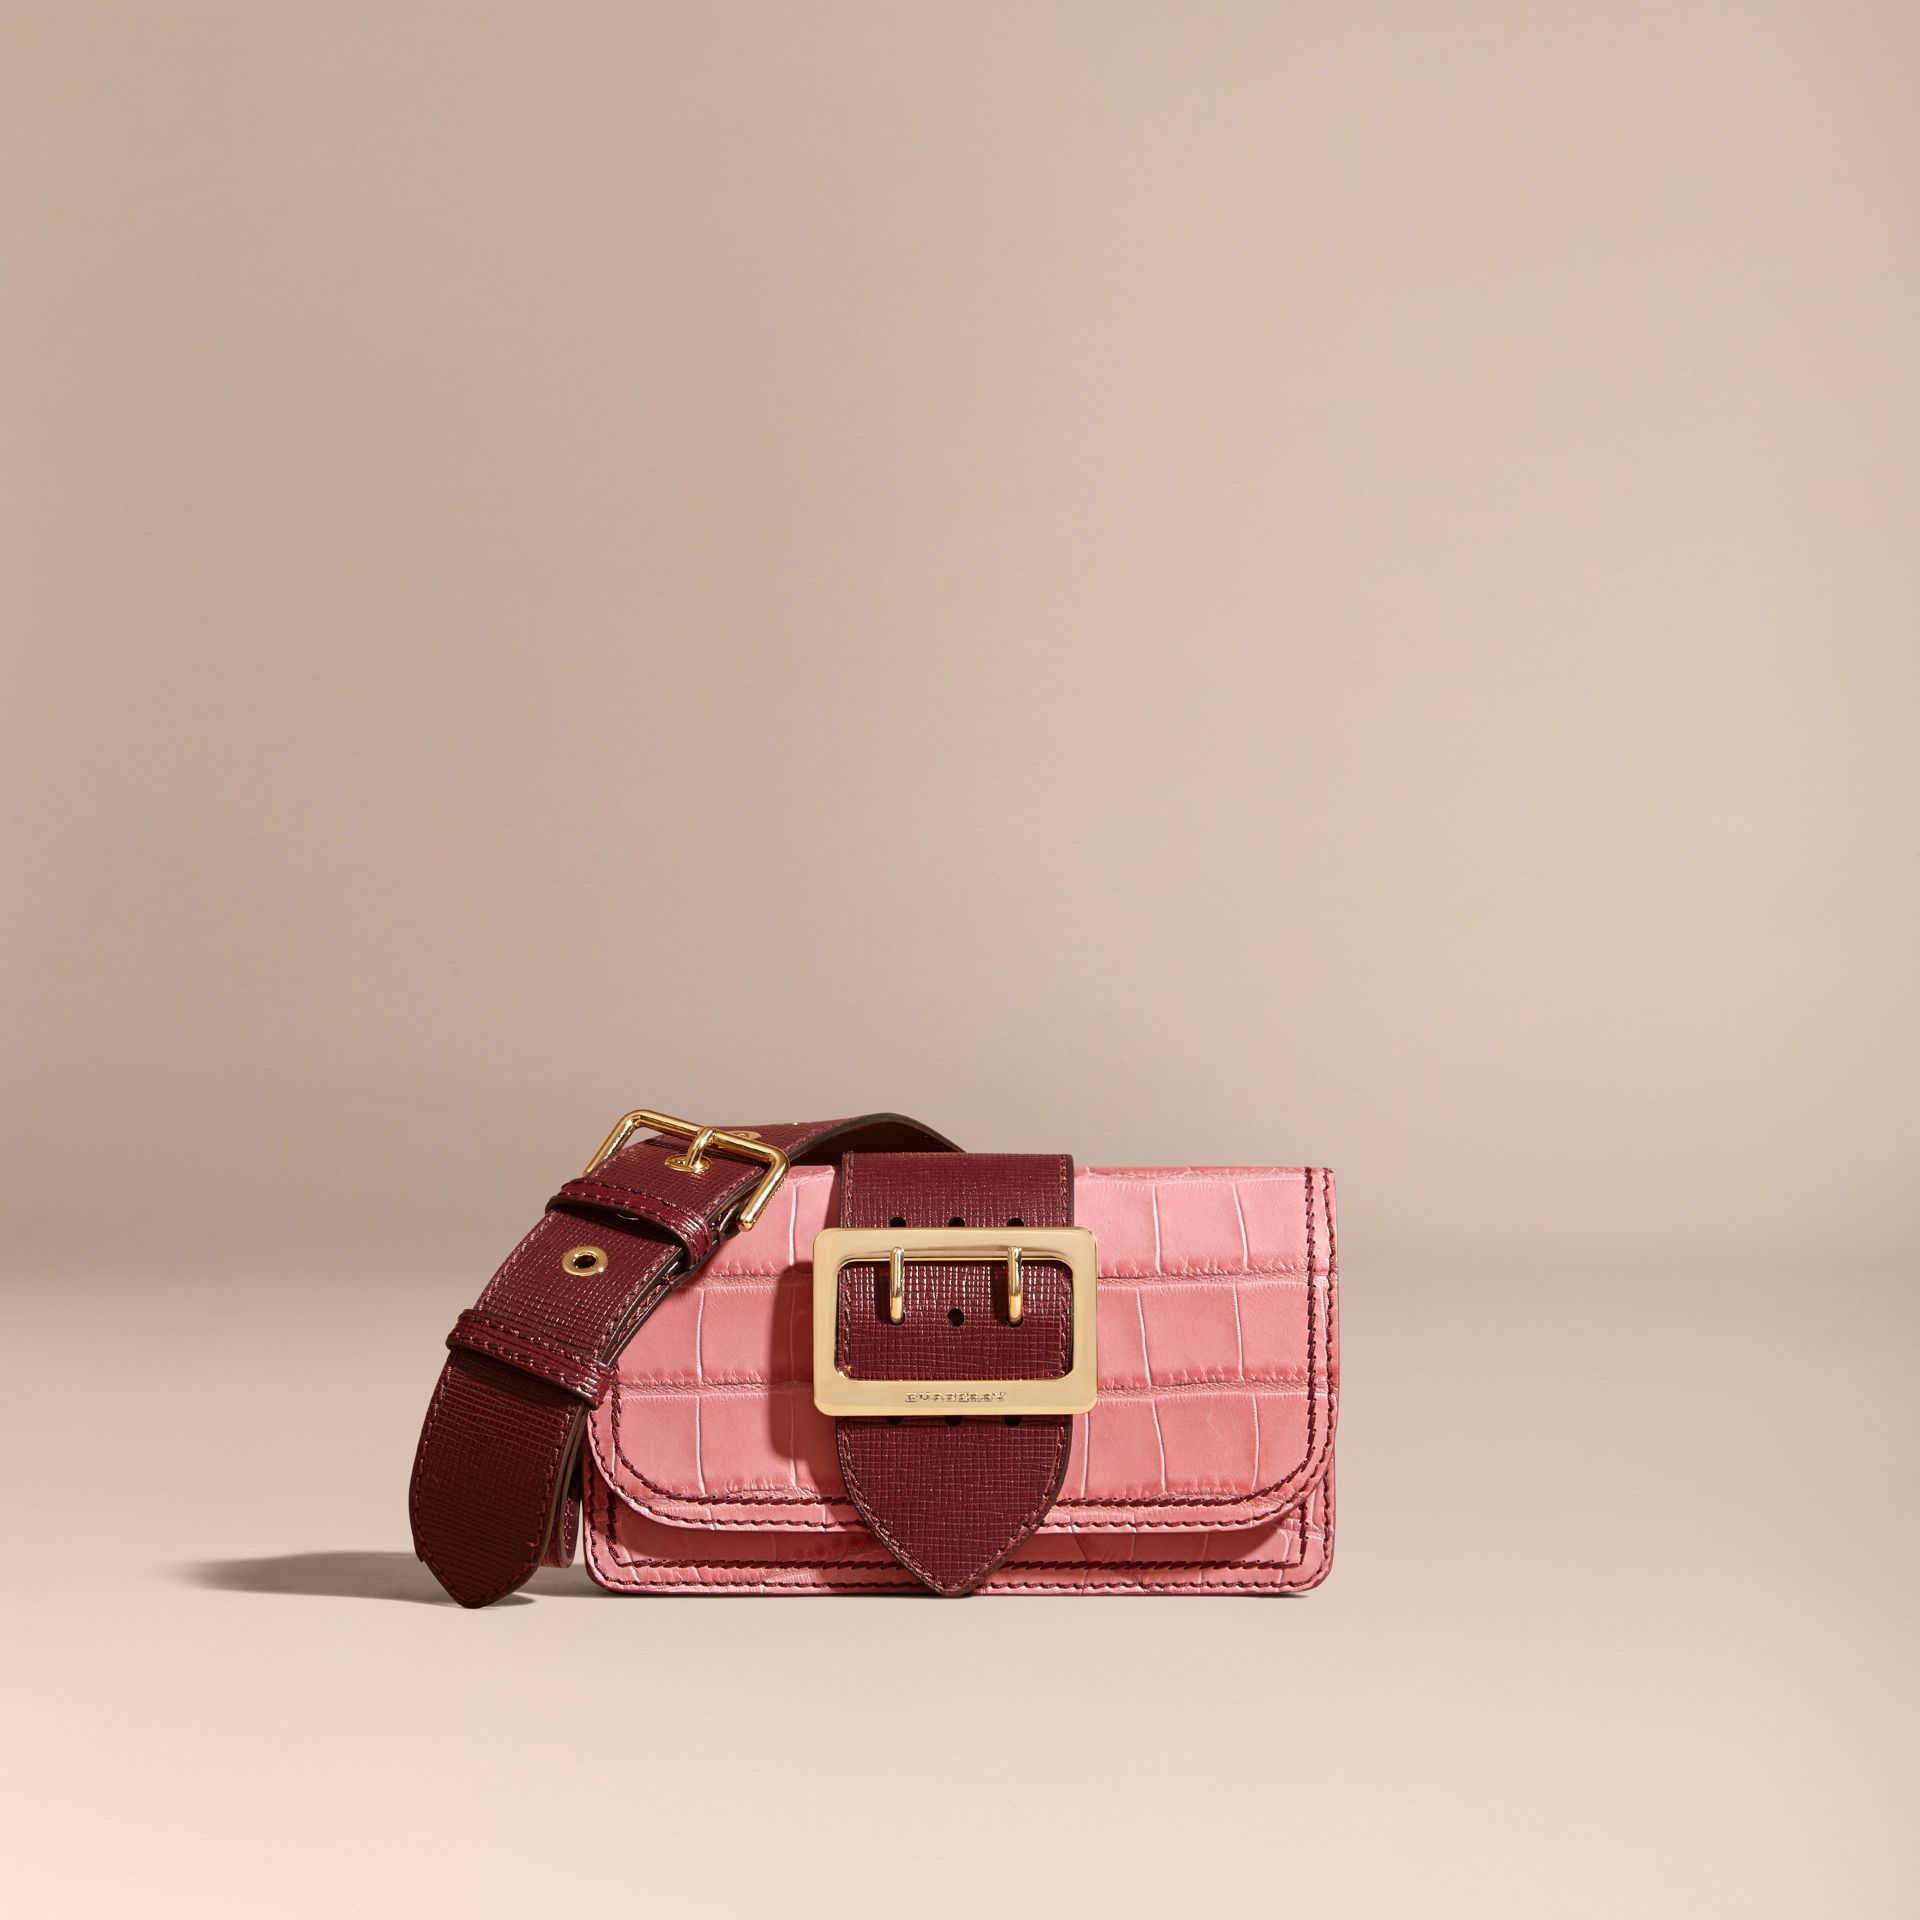 The Small Buckle Bag in Alligator and Leather in Dusky Pink/ Burgundy - Women | Burberry Australia - gallery image 9